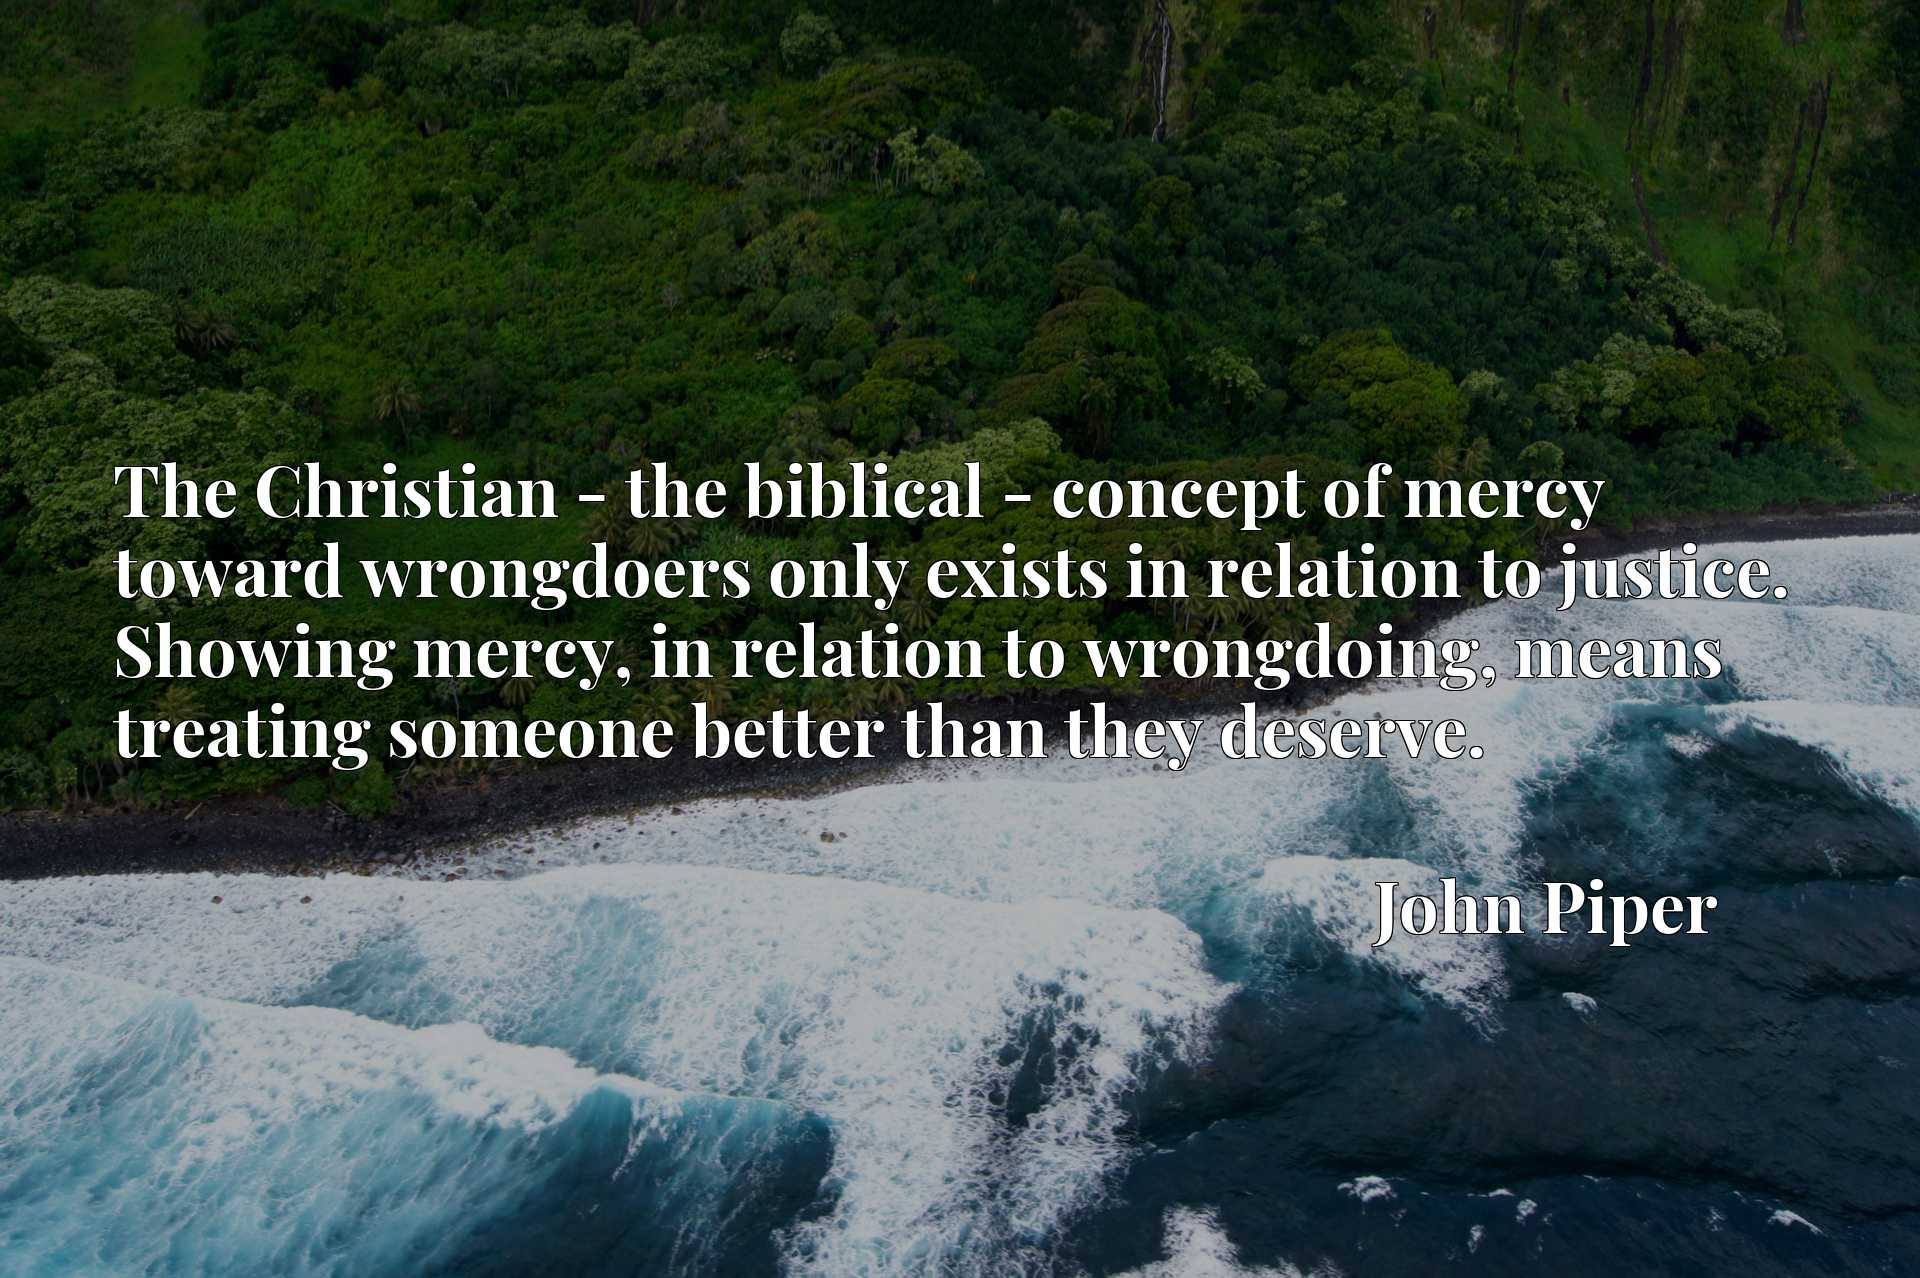 The Christian - the biblical - concept of mercy toward wrongdoers only exists in relation to justice. Showing mercy, in relation to wrongdoing, means treating someone better than they deserve.